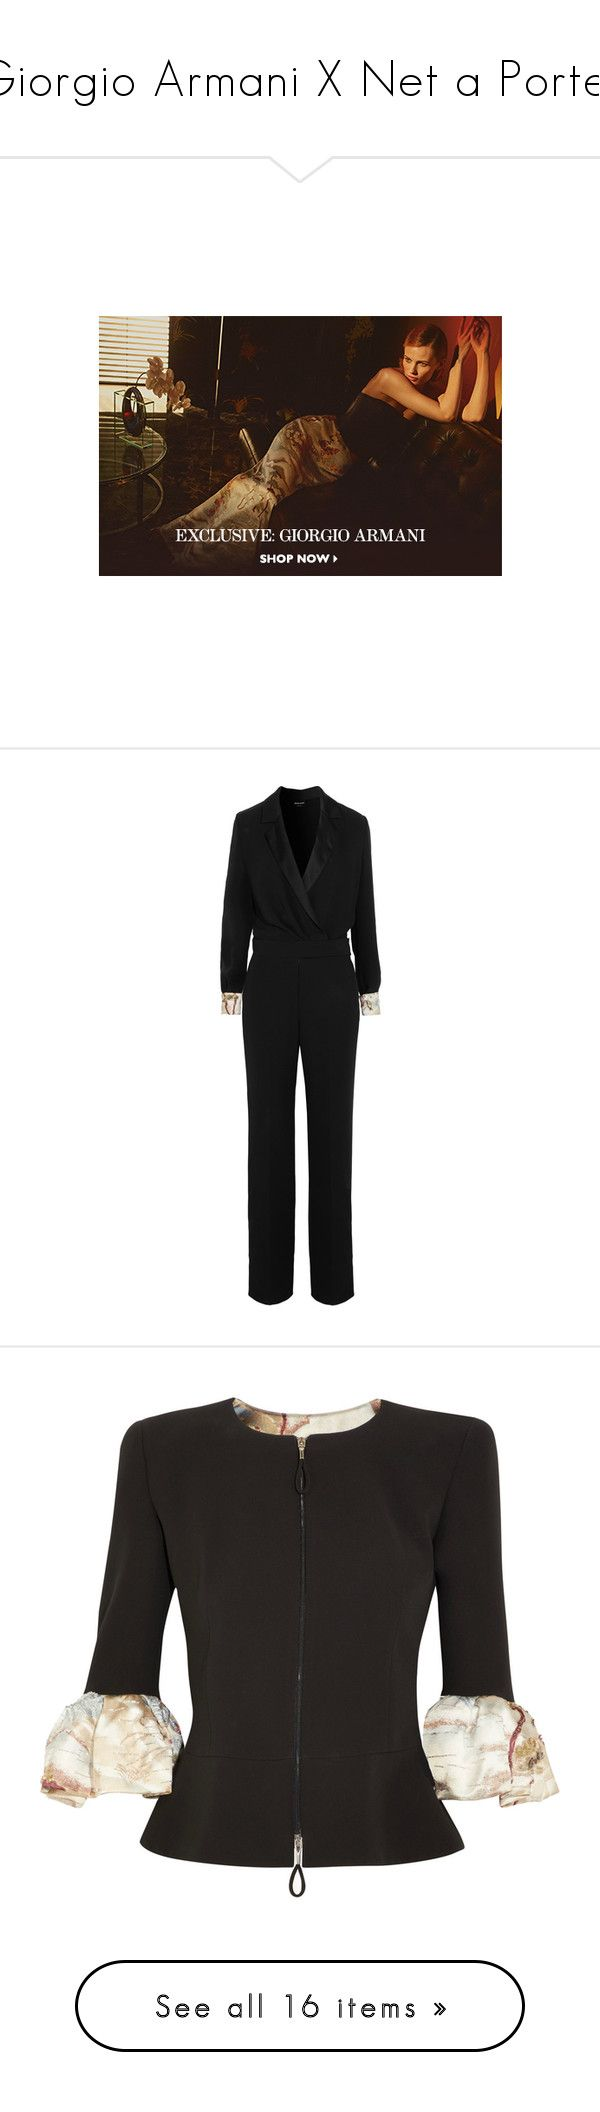 """""""Giorgio Armani X Net a Porter"""" by sylandrya ❤ liked on Polyvore featuring jumpsuits, black, sequin jump suit, giorgio armani tuxedo, going out jumpsuits, giorgio armani, tux jumpsuit, dresses, gowns and beige"""